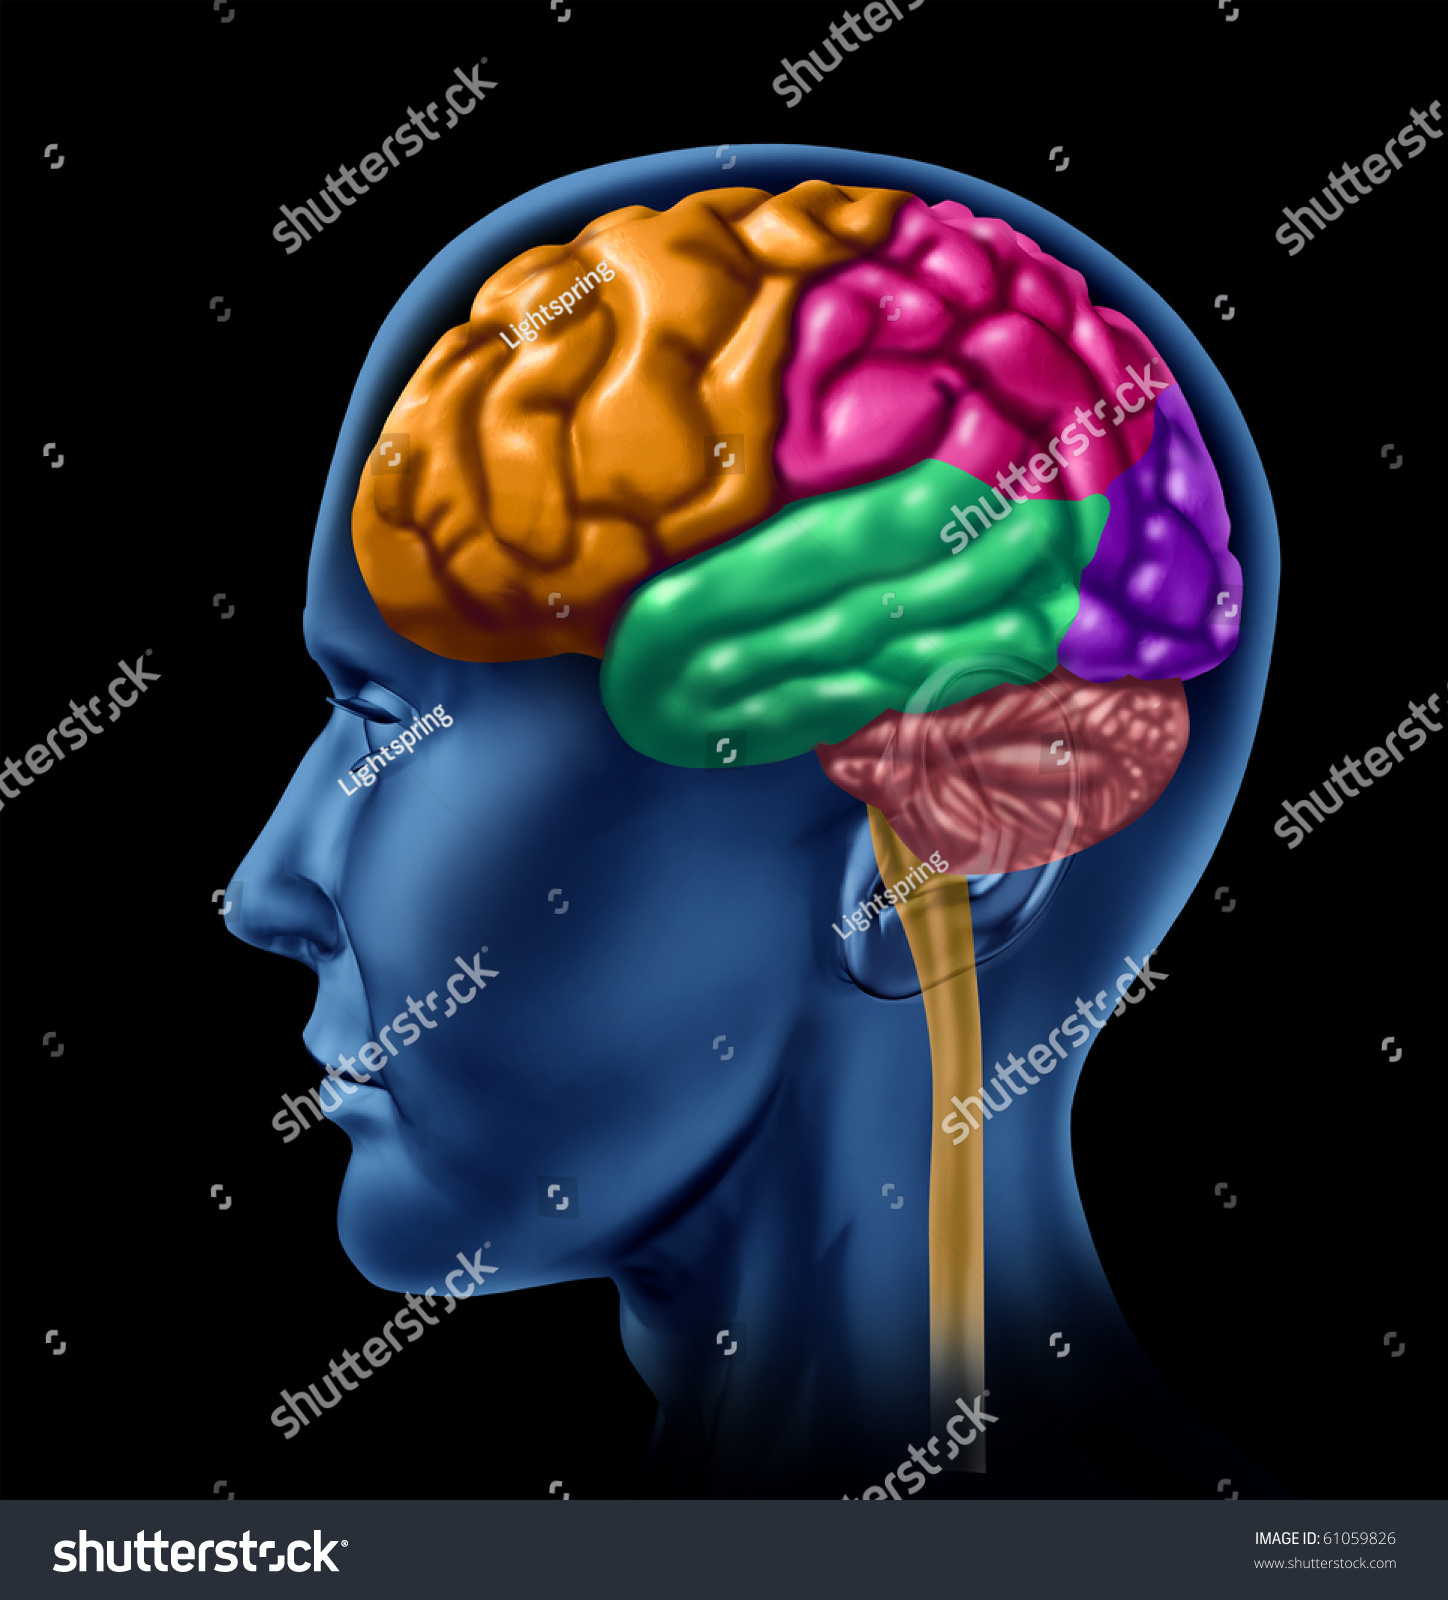 brain lobe sections divisions of mental neurological lobes activity stock photo 61059826. Black Bedroom Furniture Sets. Home Design Ideas